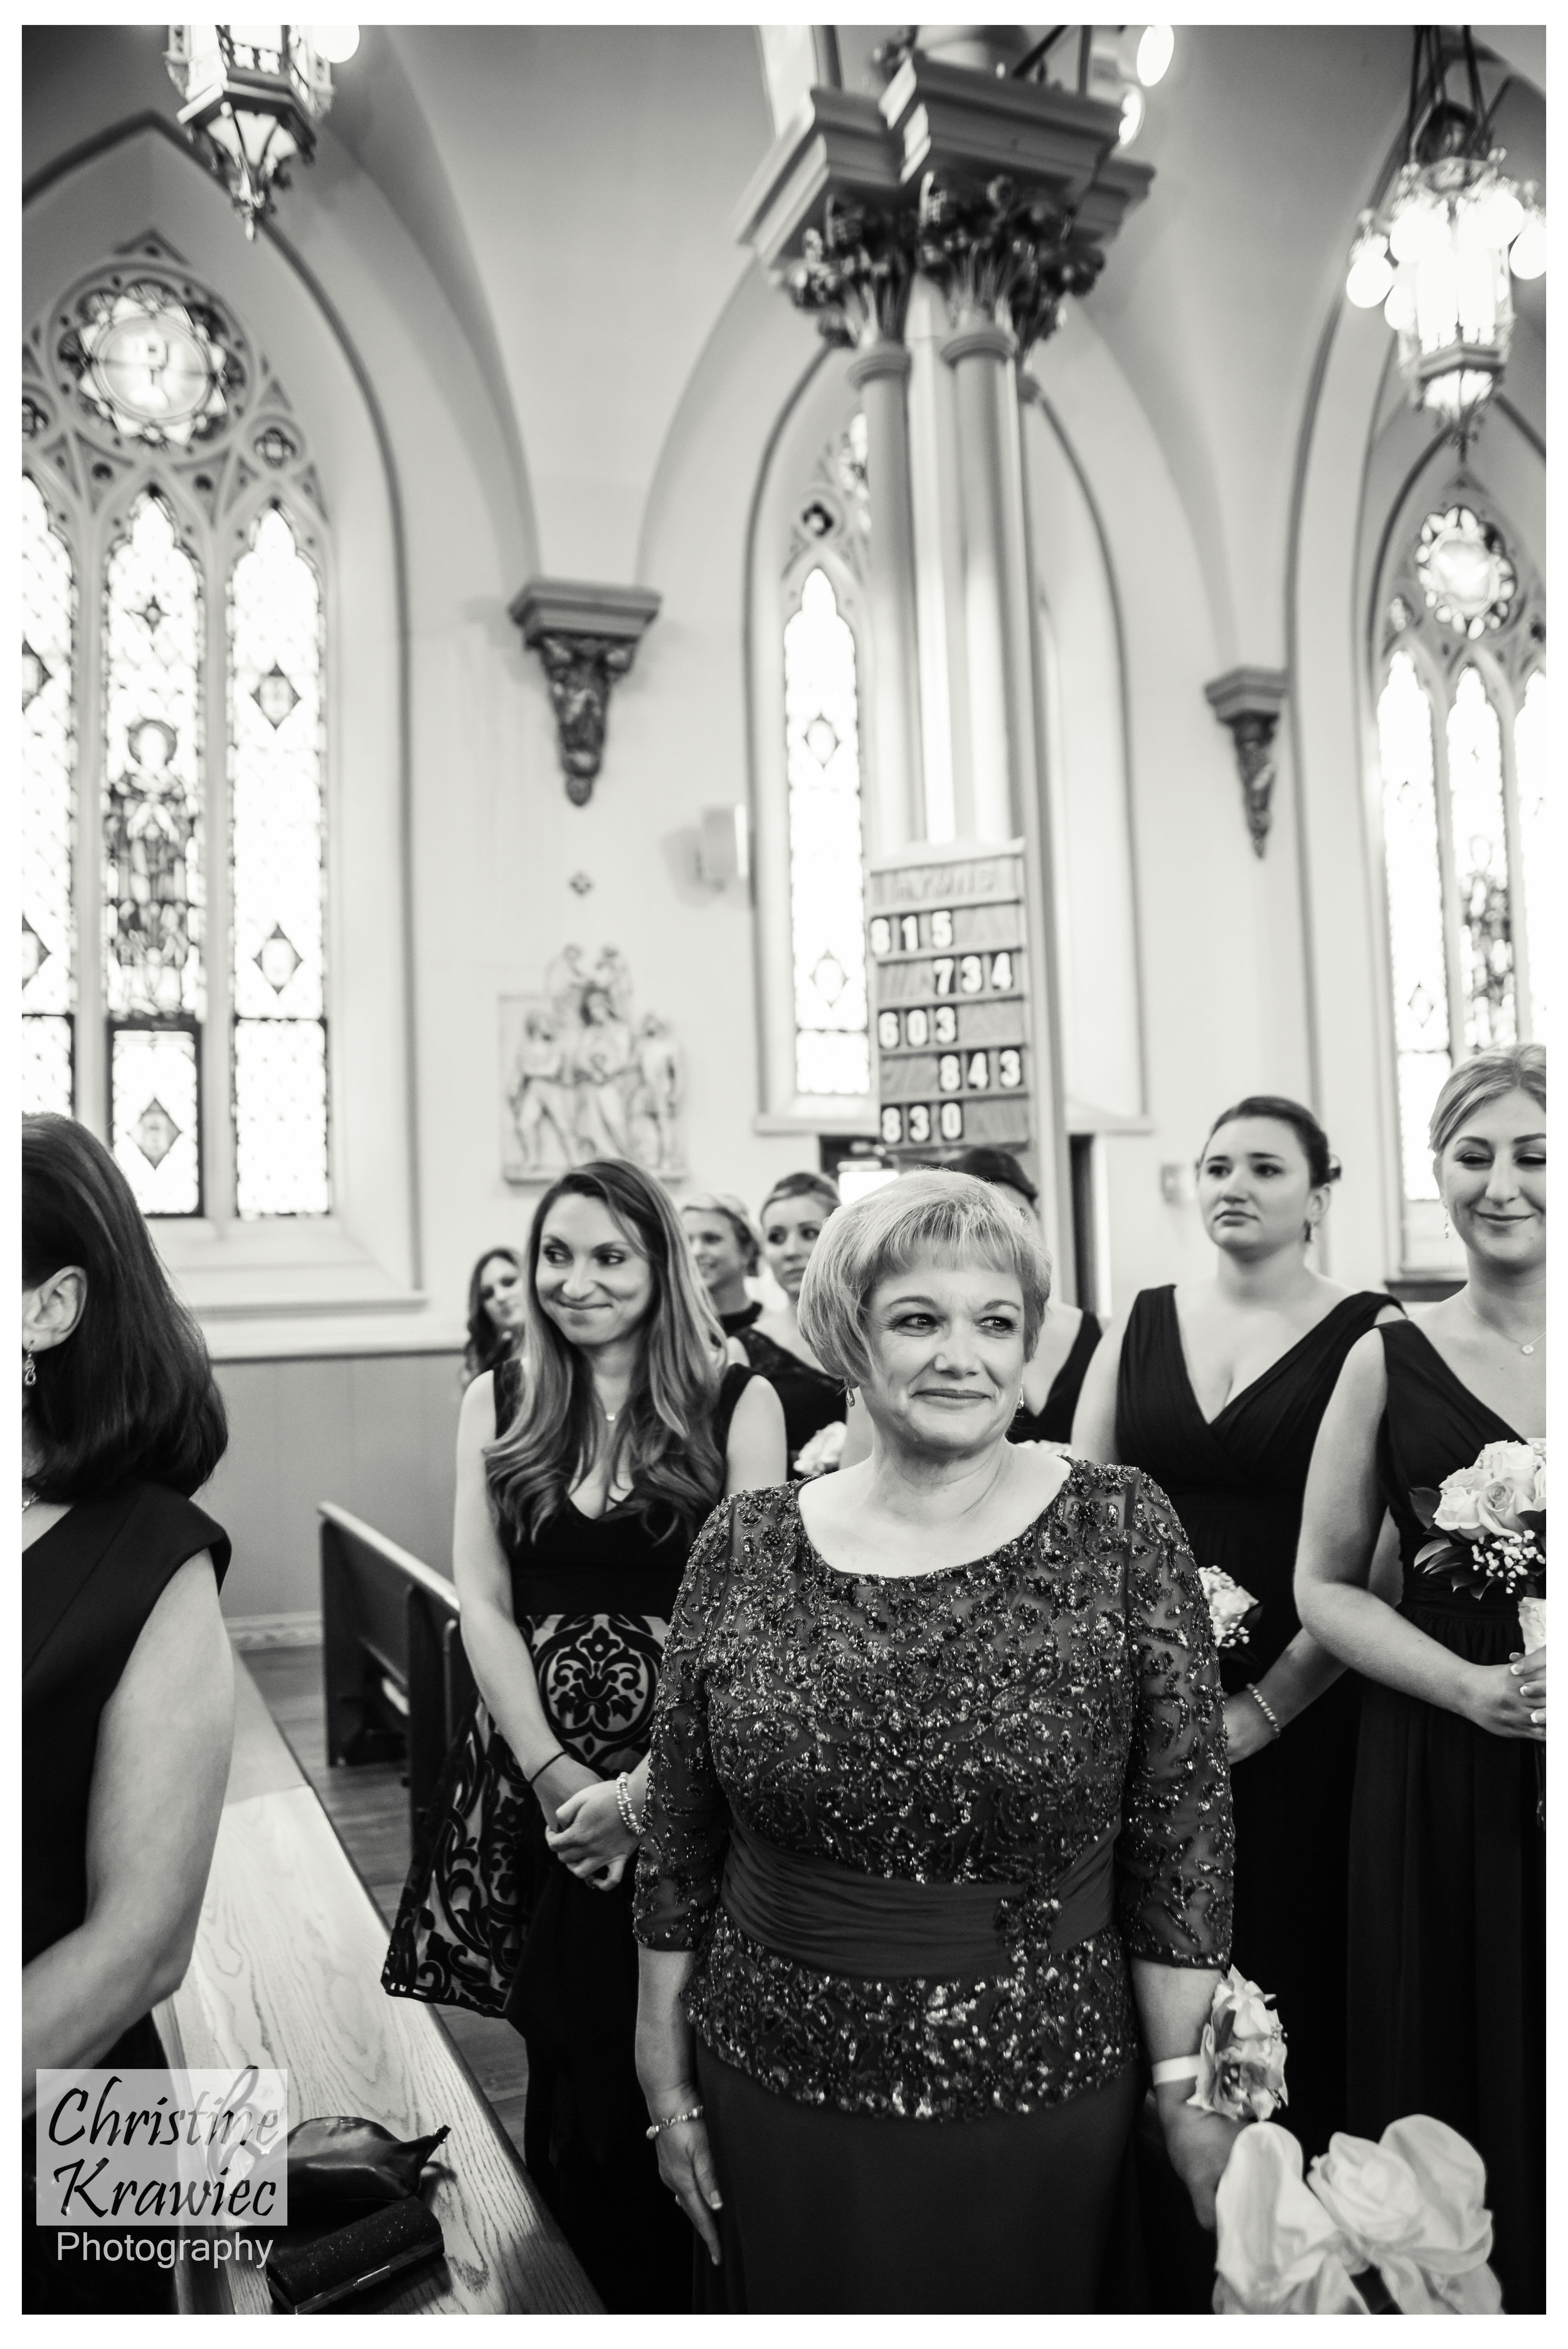 Everyone always watches the Bride as well as the groom on the trek down the aisle, but I like to take a quick glance at the Mother of the Bride, she is BEAMING!